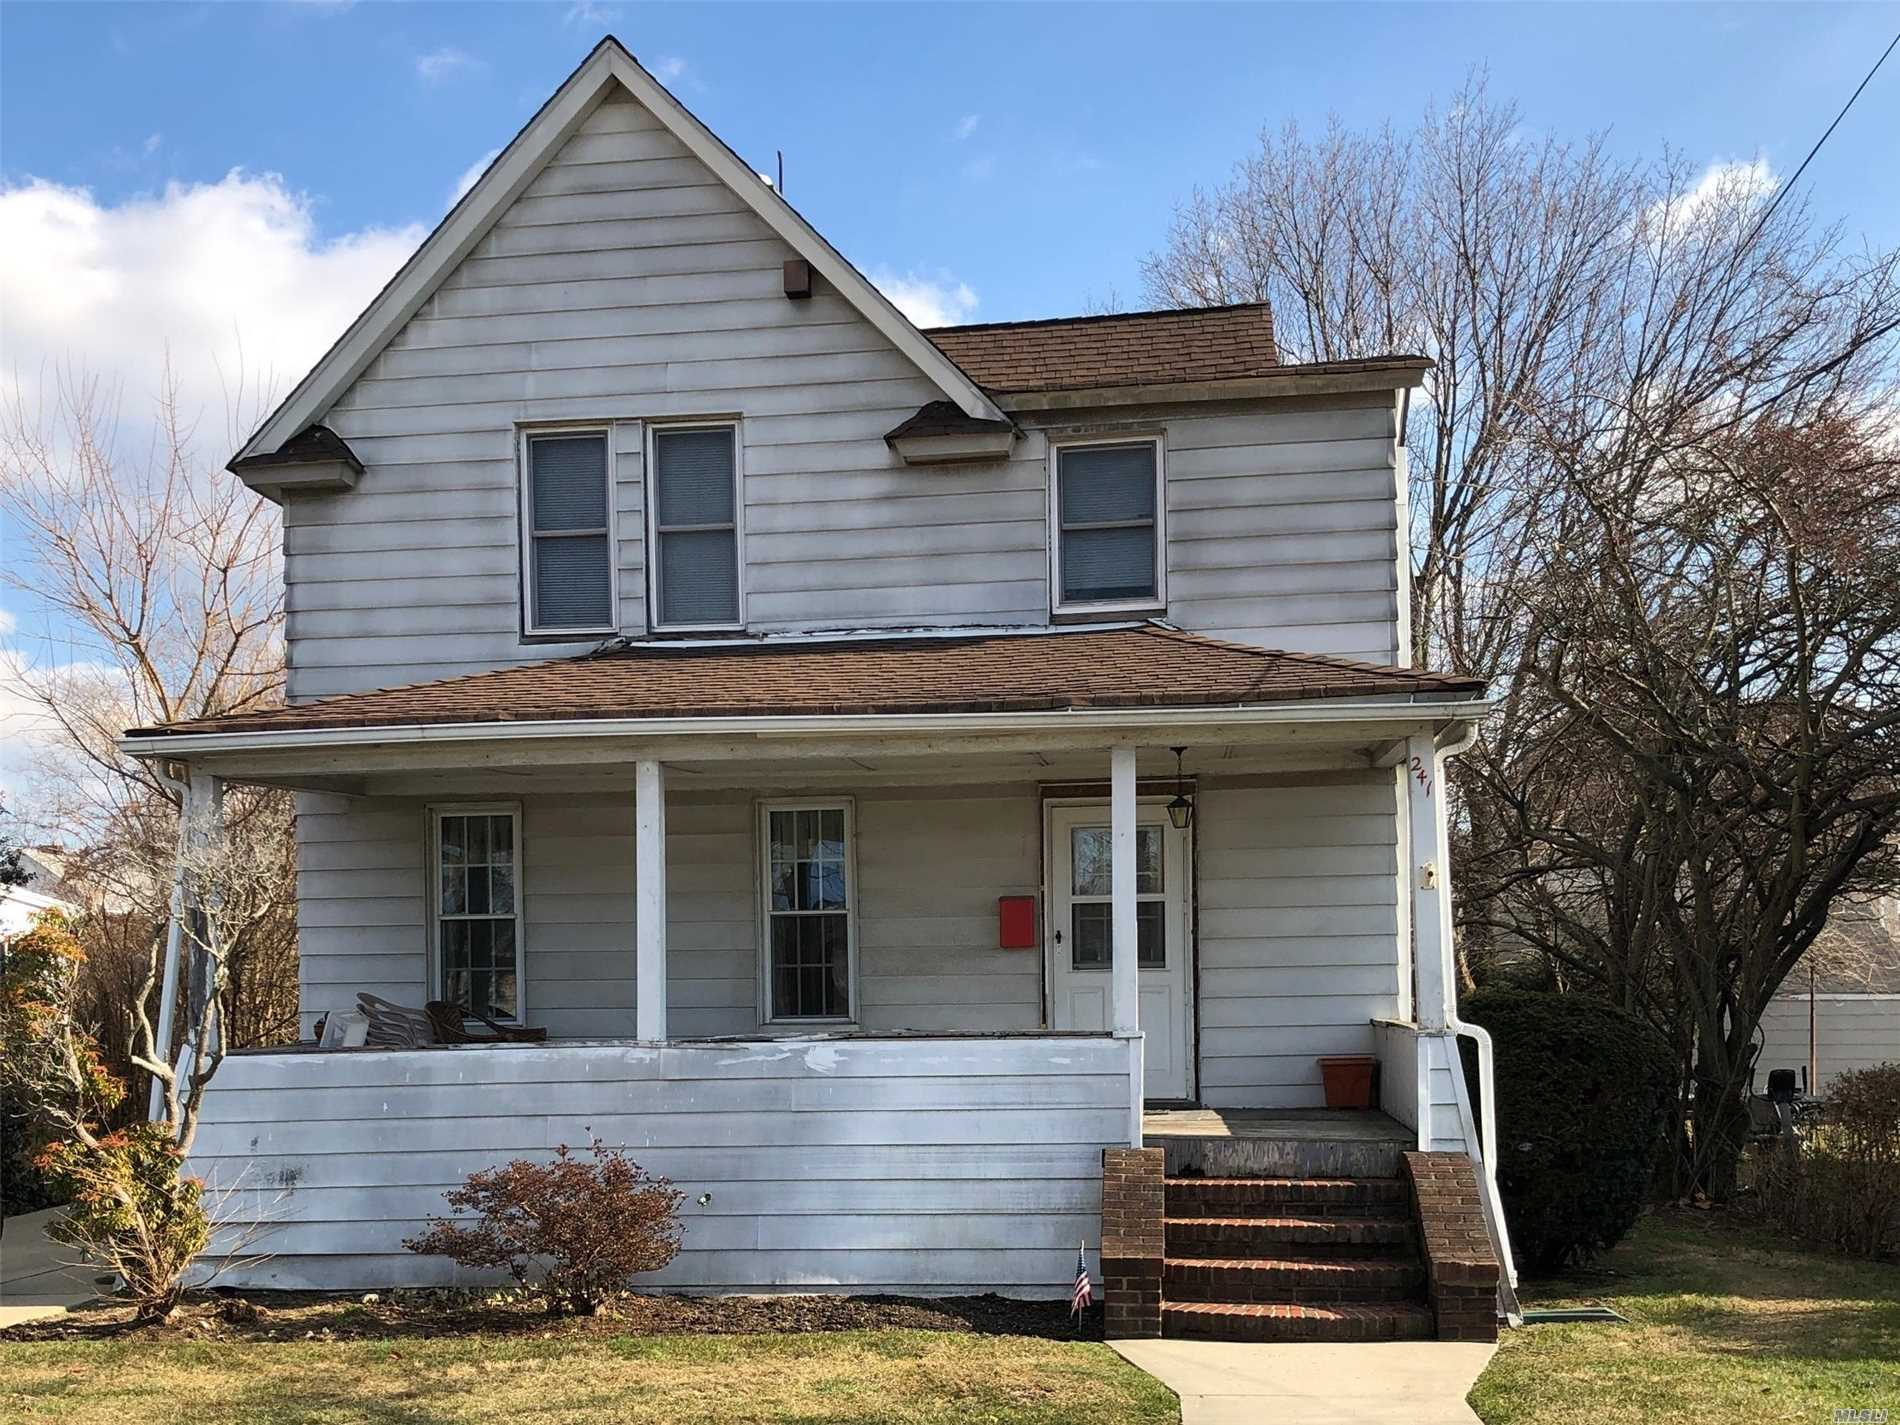 Bring Your Tools And Make This Your Own. Great For Investor Or Looking To Add Your Own Style. Oversized Property In Great Location. Gas Conversion With New Boiler 2013, New Driveway 2013, Roof 2006.. Sold As Is. Cash Offers Only!